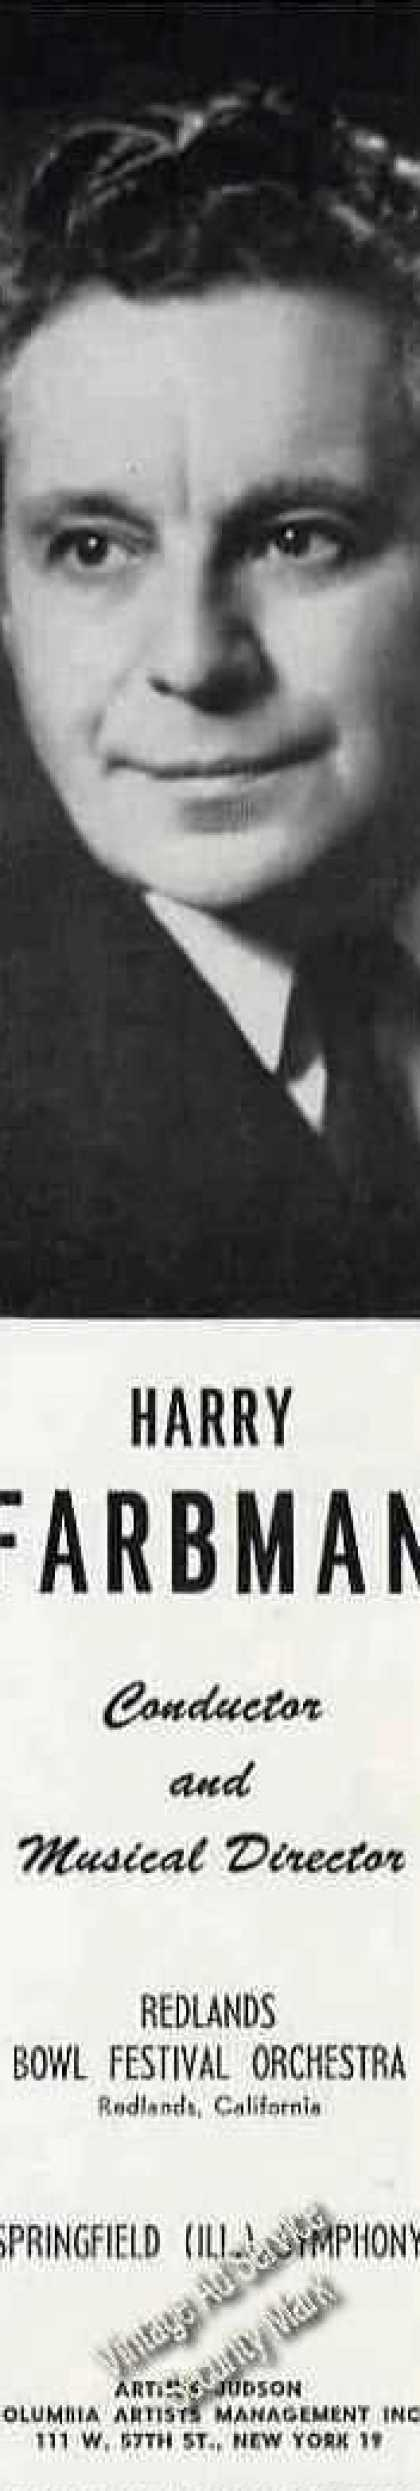 Harry Farbman Photo Conductor Music (1960)